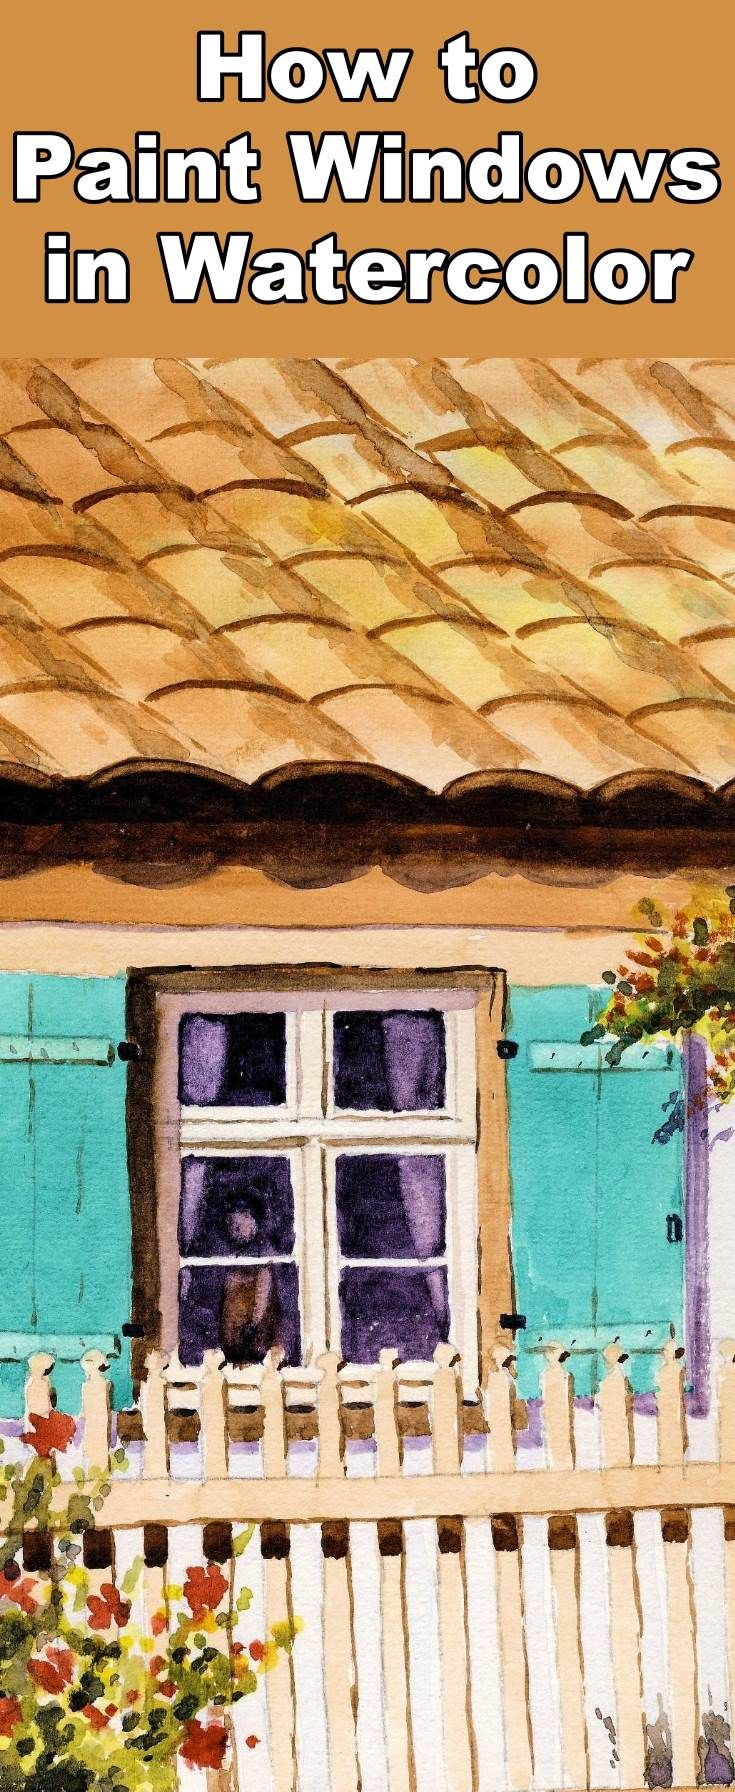 Learn How To Paint Glass And Windows With This Watercolor Painting